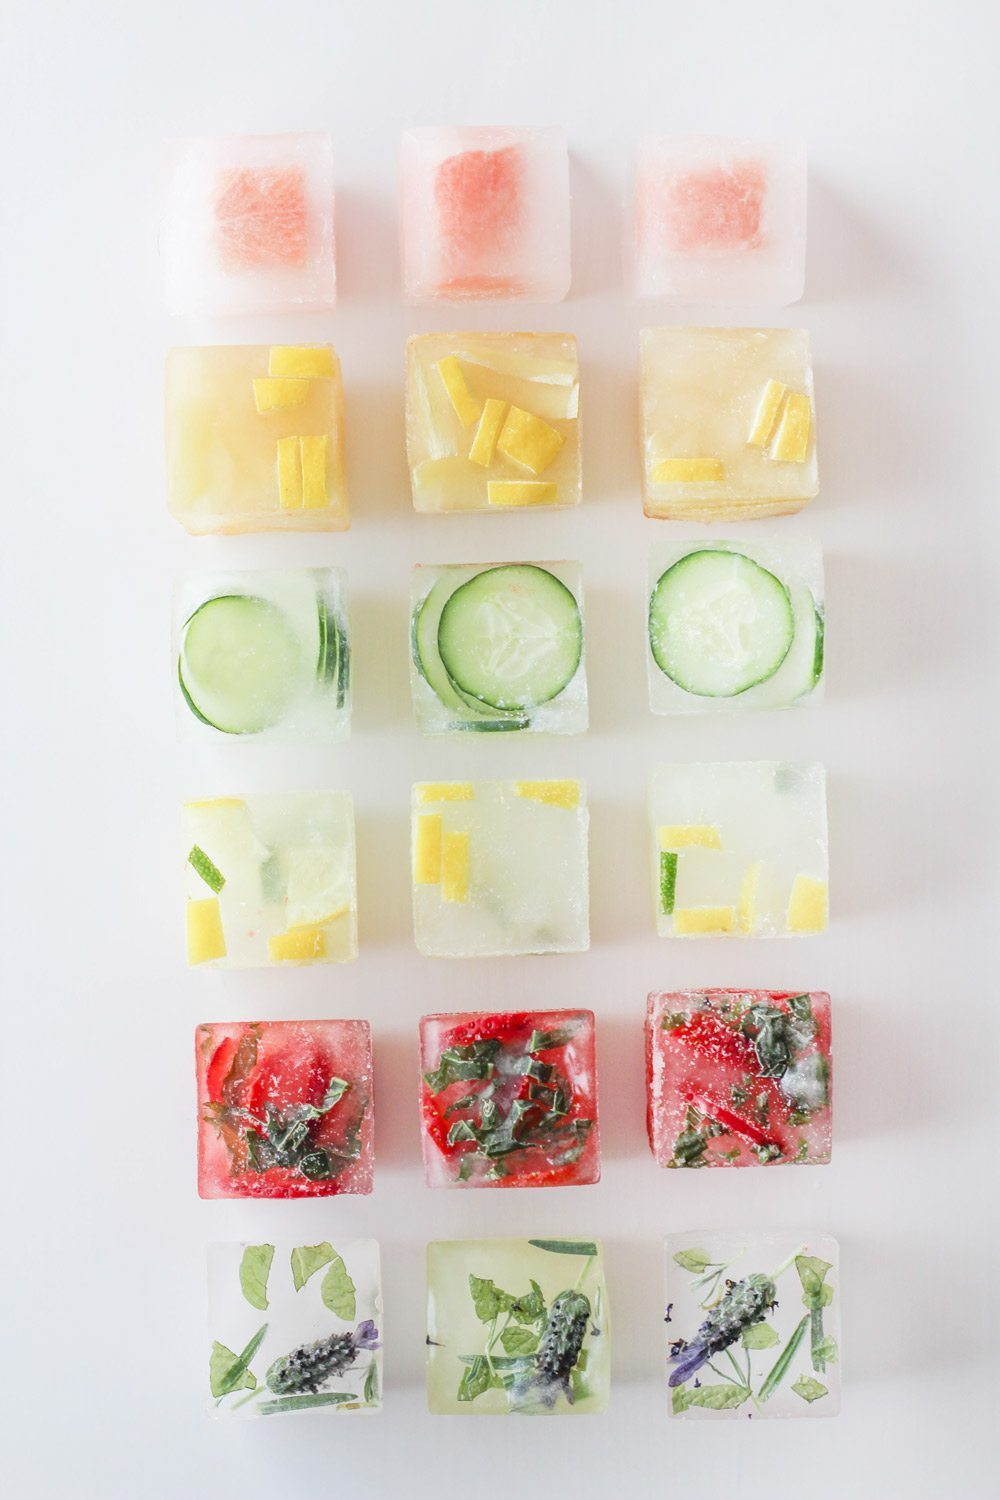 Flavored Ice Cubes | Summer entertaining, summer party ideas and more from @cydconverse